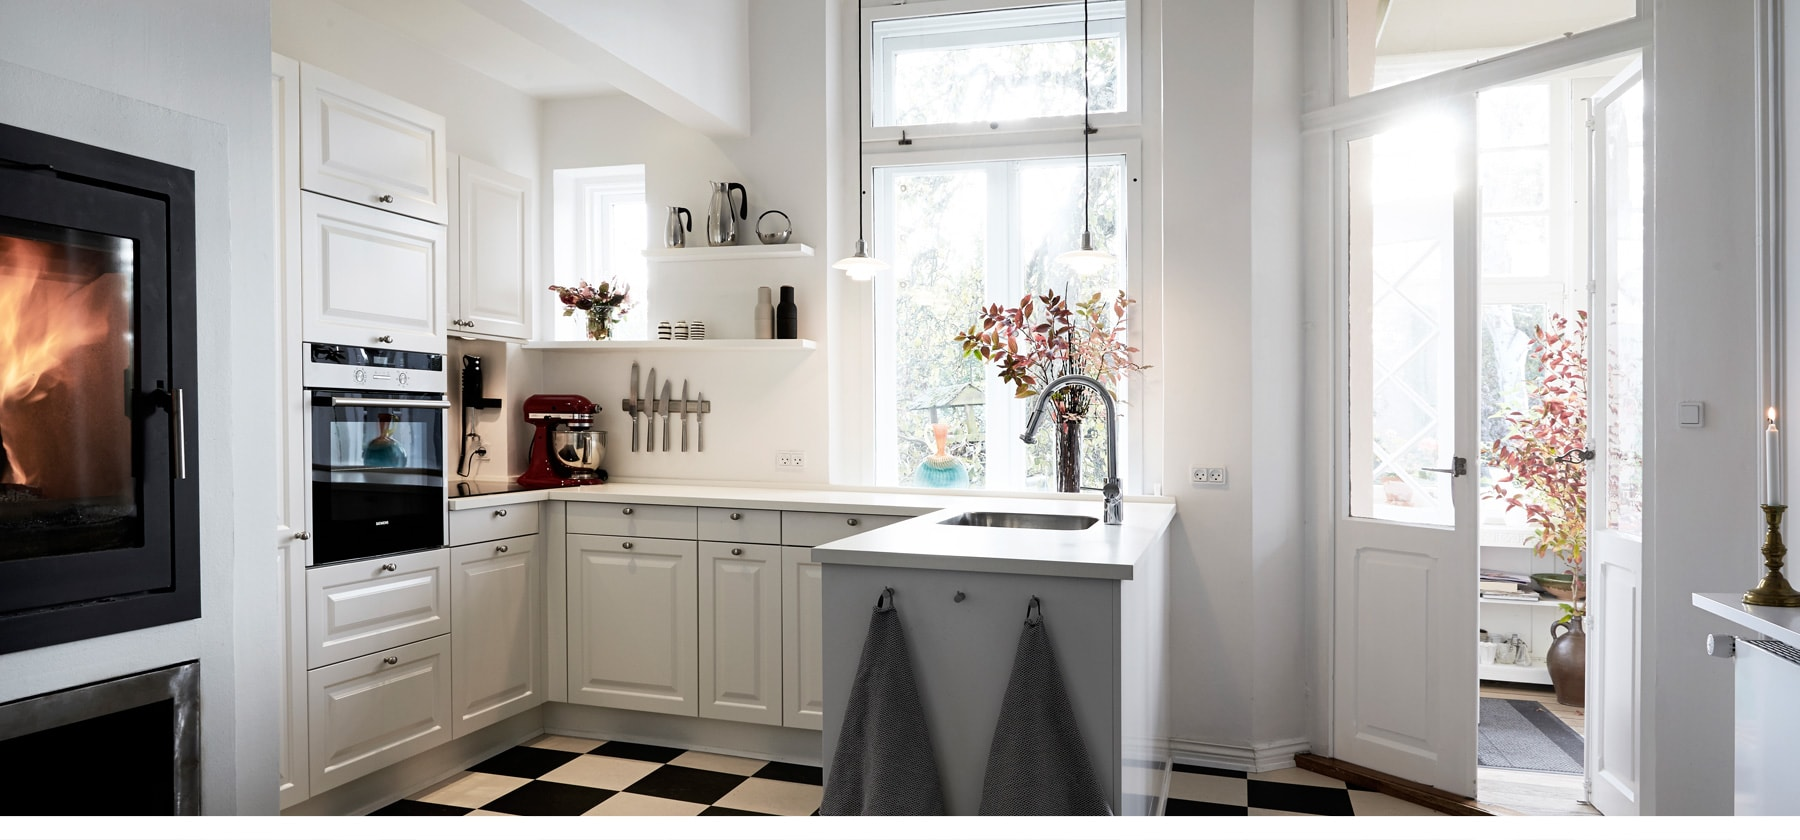 Romantic kitchen atmosphere WITH HISTORY